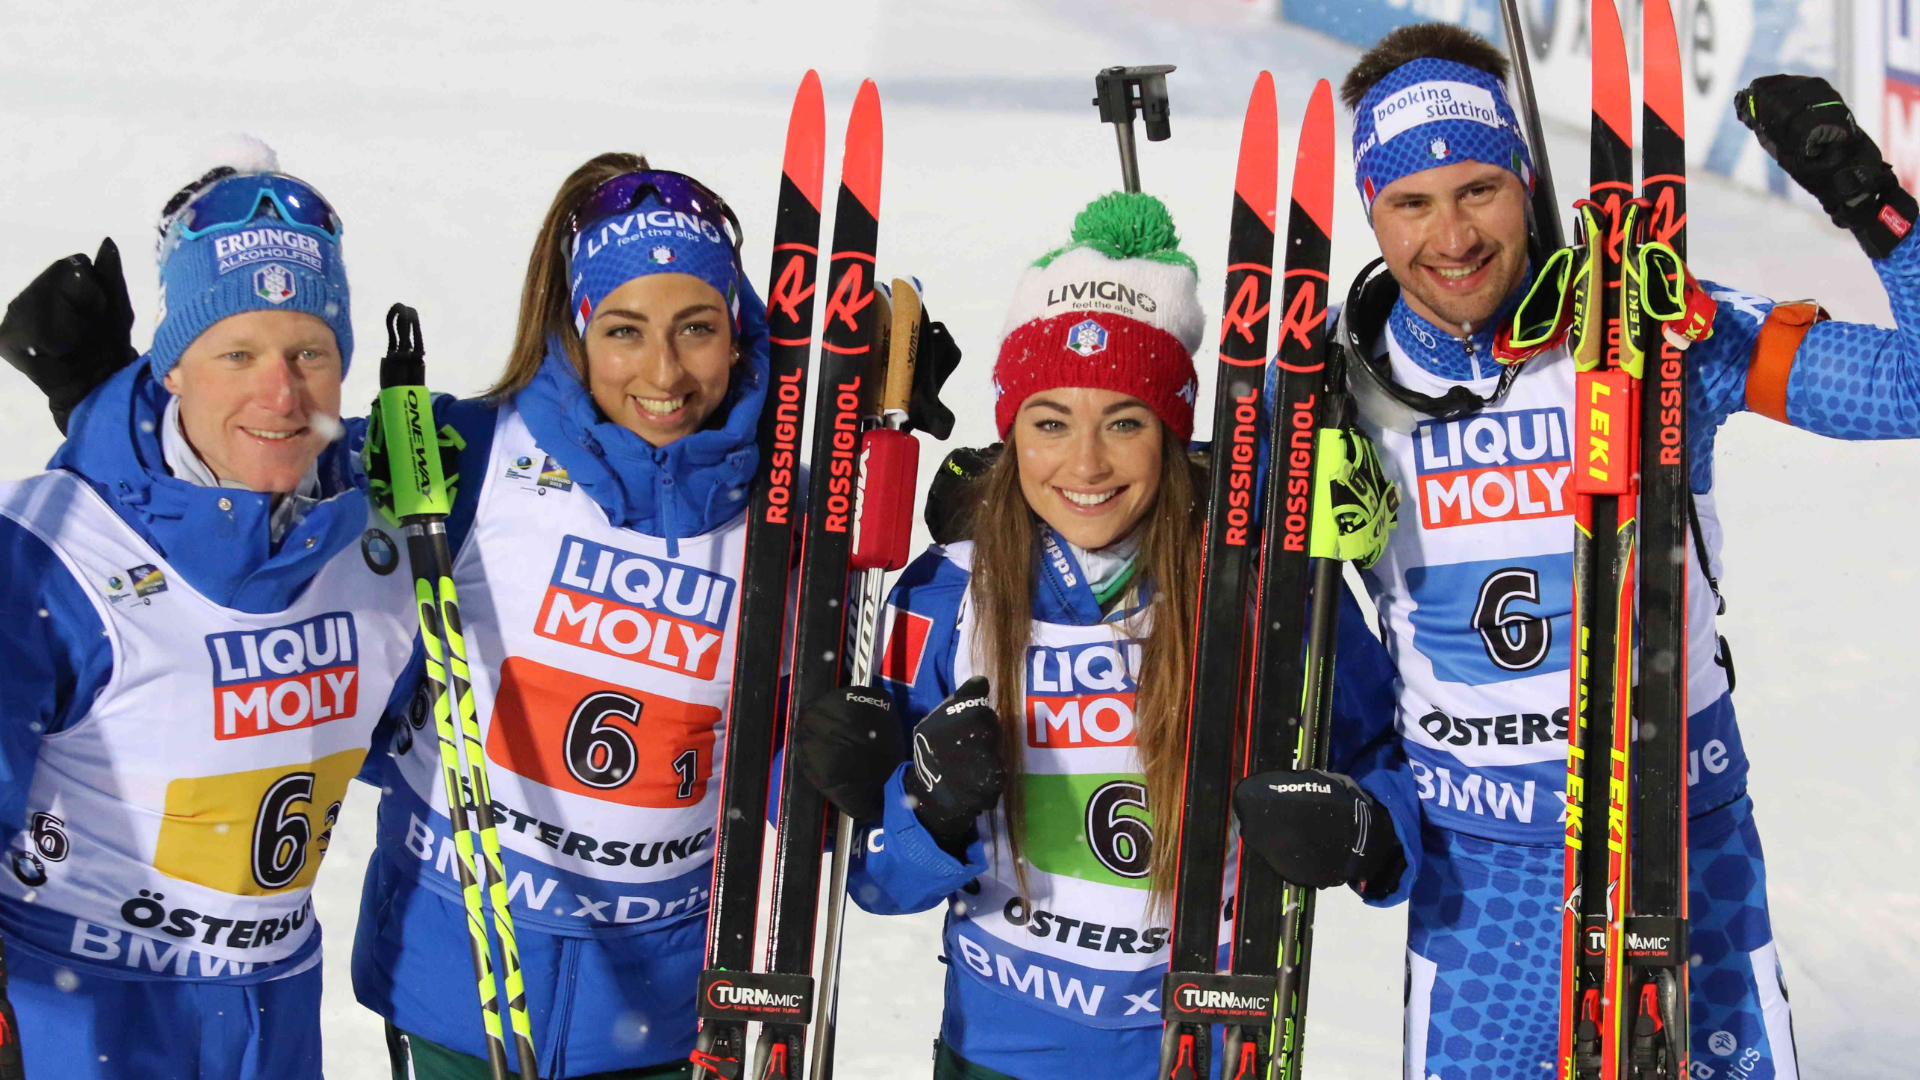 BIATHLON: TEAM ITALY STANDS OUT AS THE PROTAGONIST IN OESTERSUND